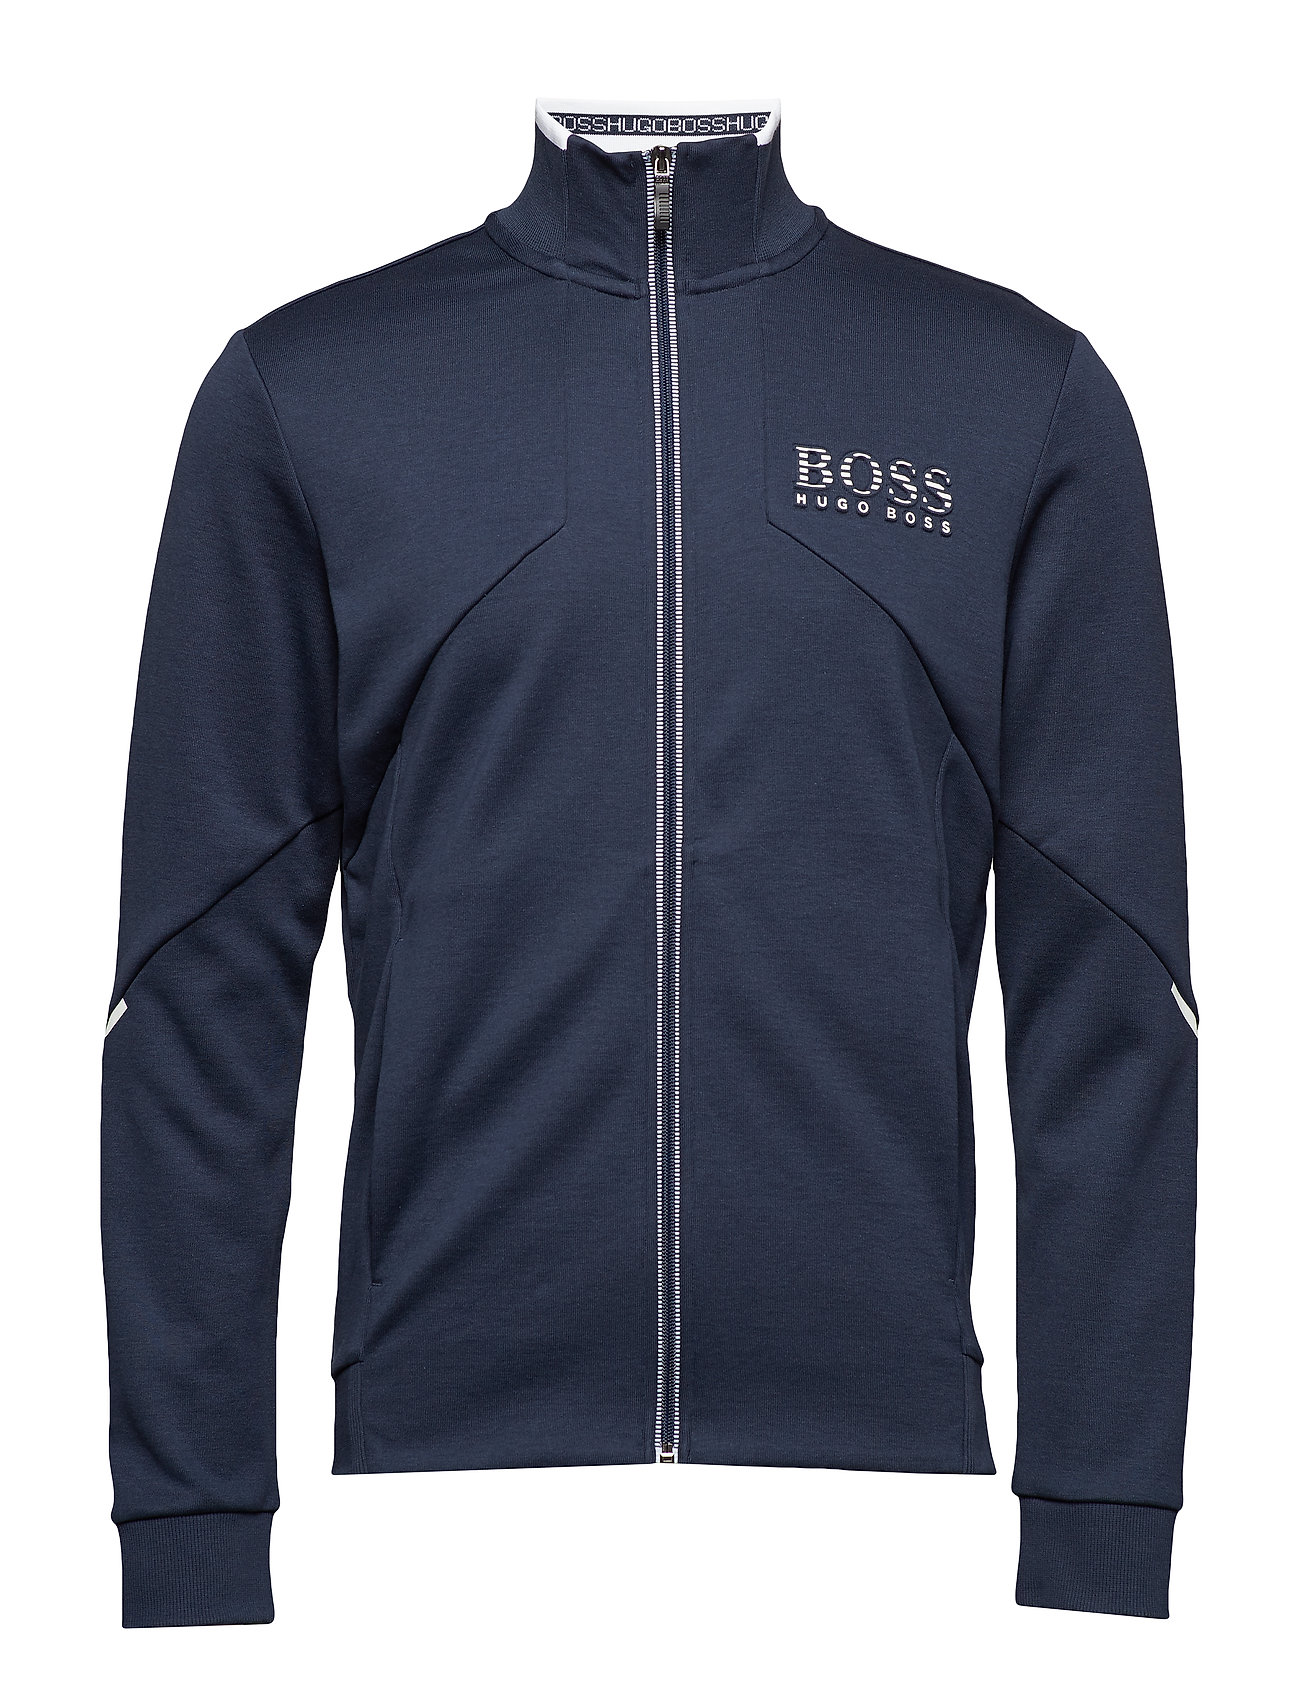 Boss Athleisure Wear Skaz - NAVY